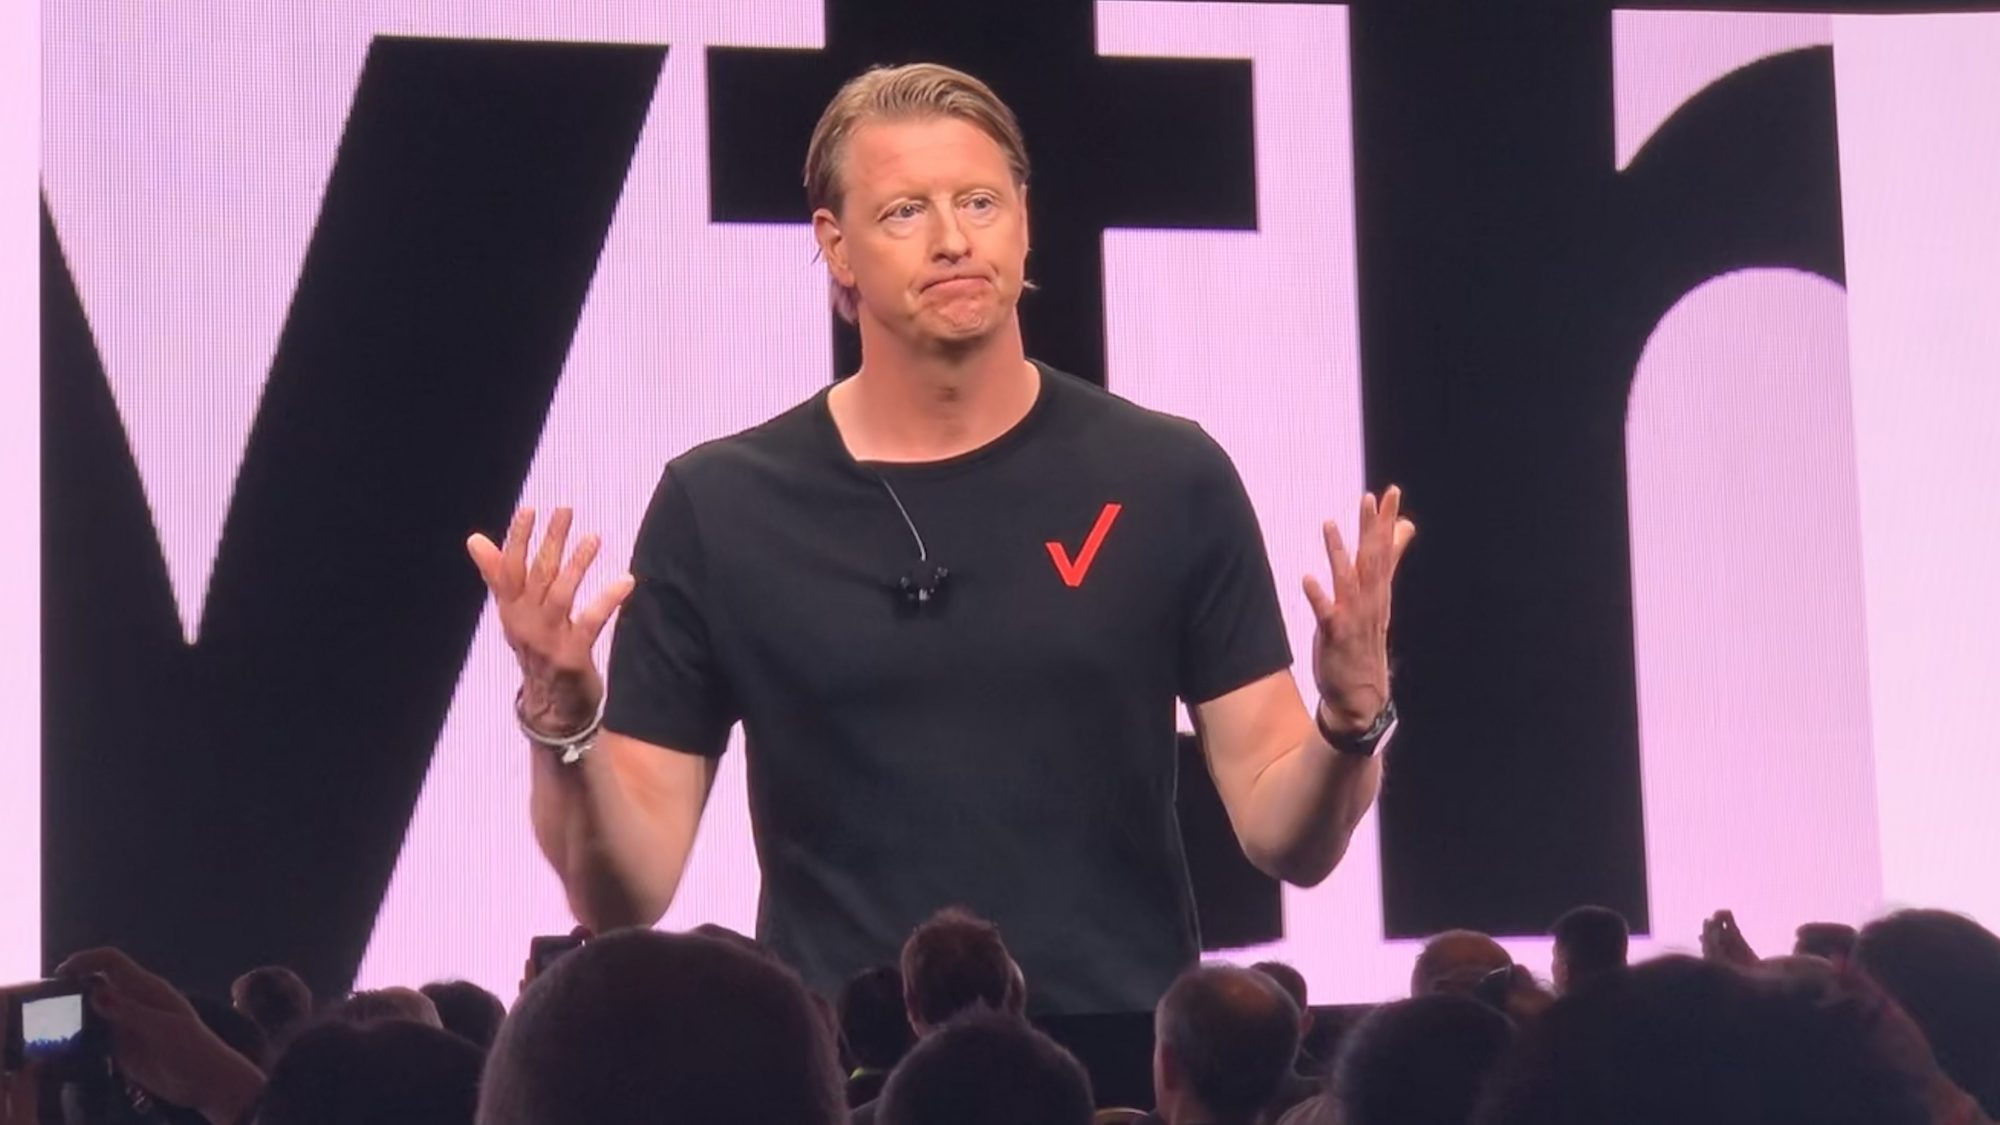 New Verizon Phones 2020 Verizon CEO expects 5G in 50% of U.S. land by 2020, 50% of phones